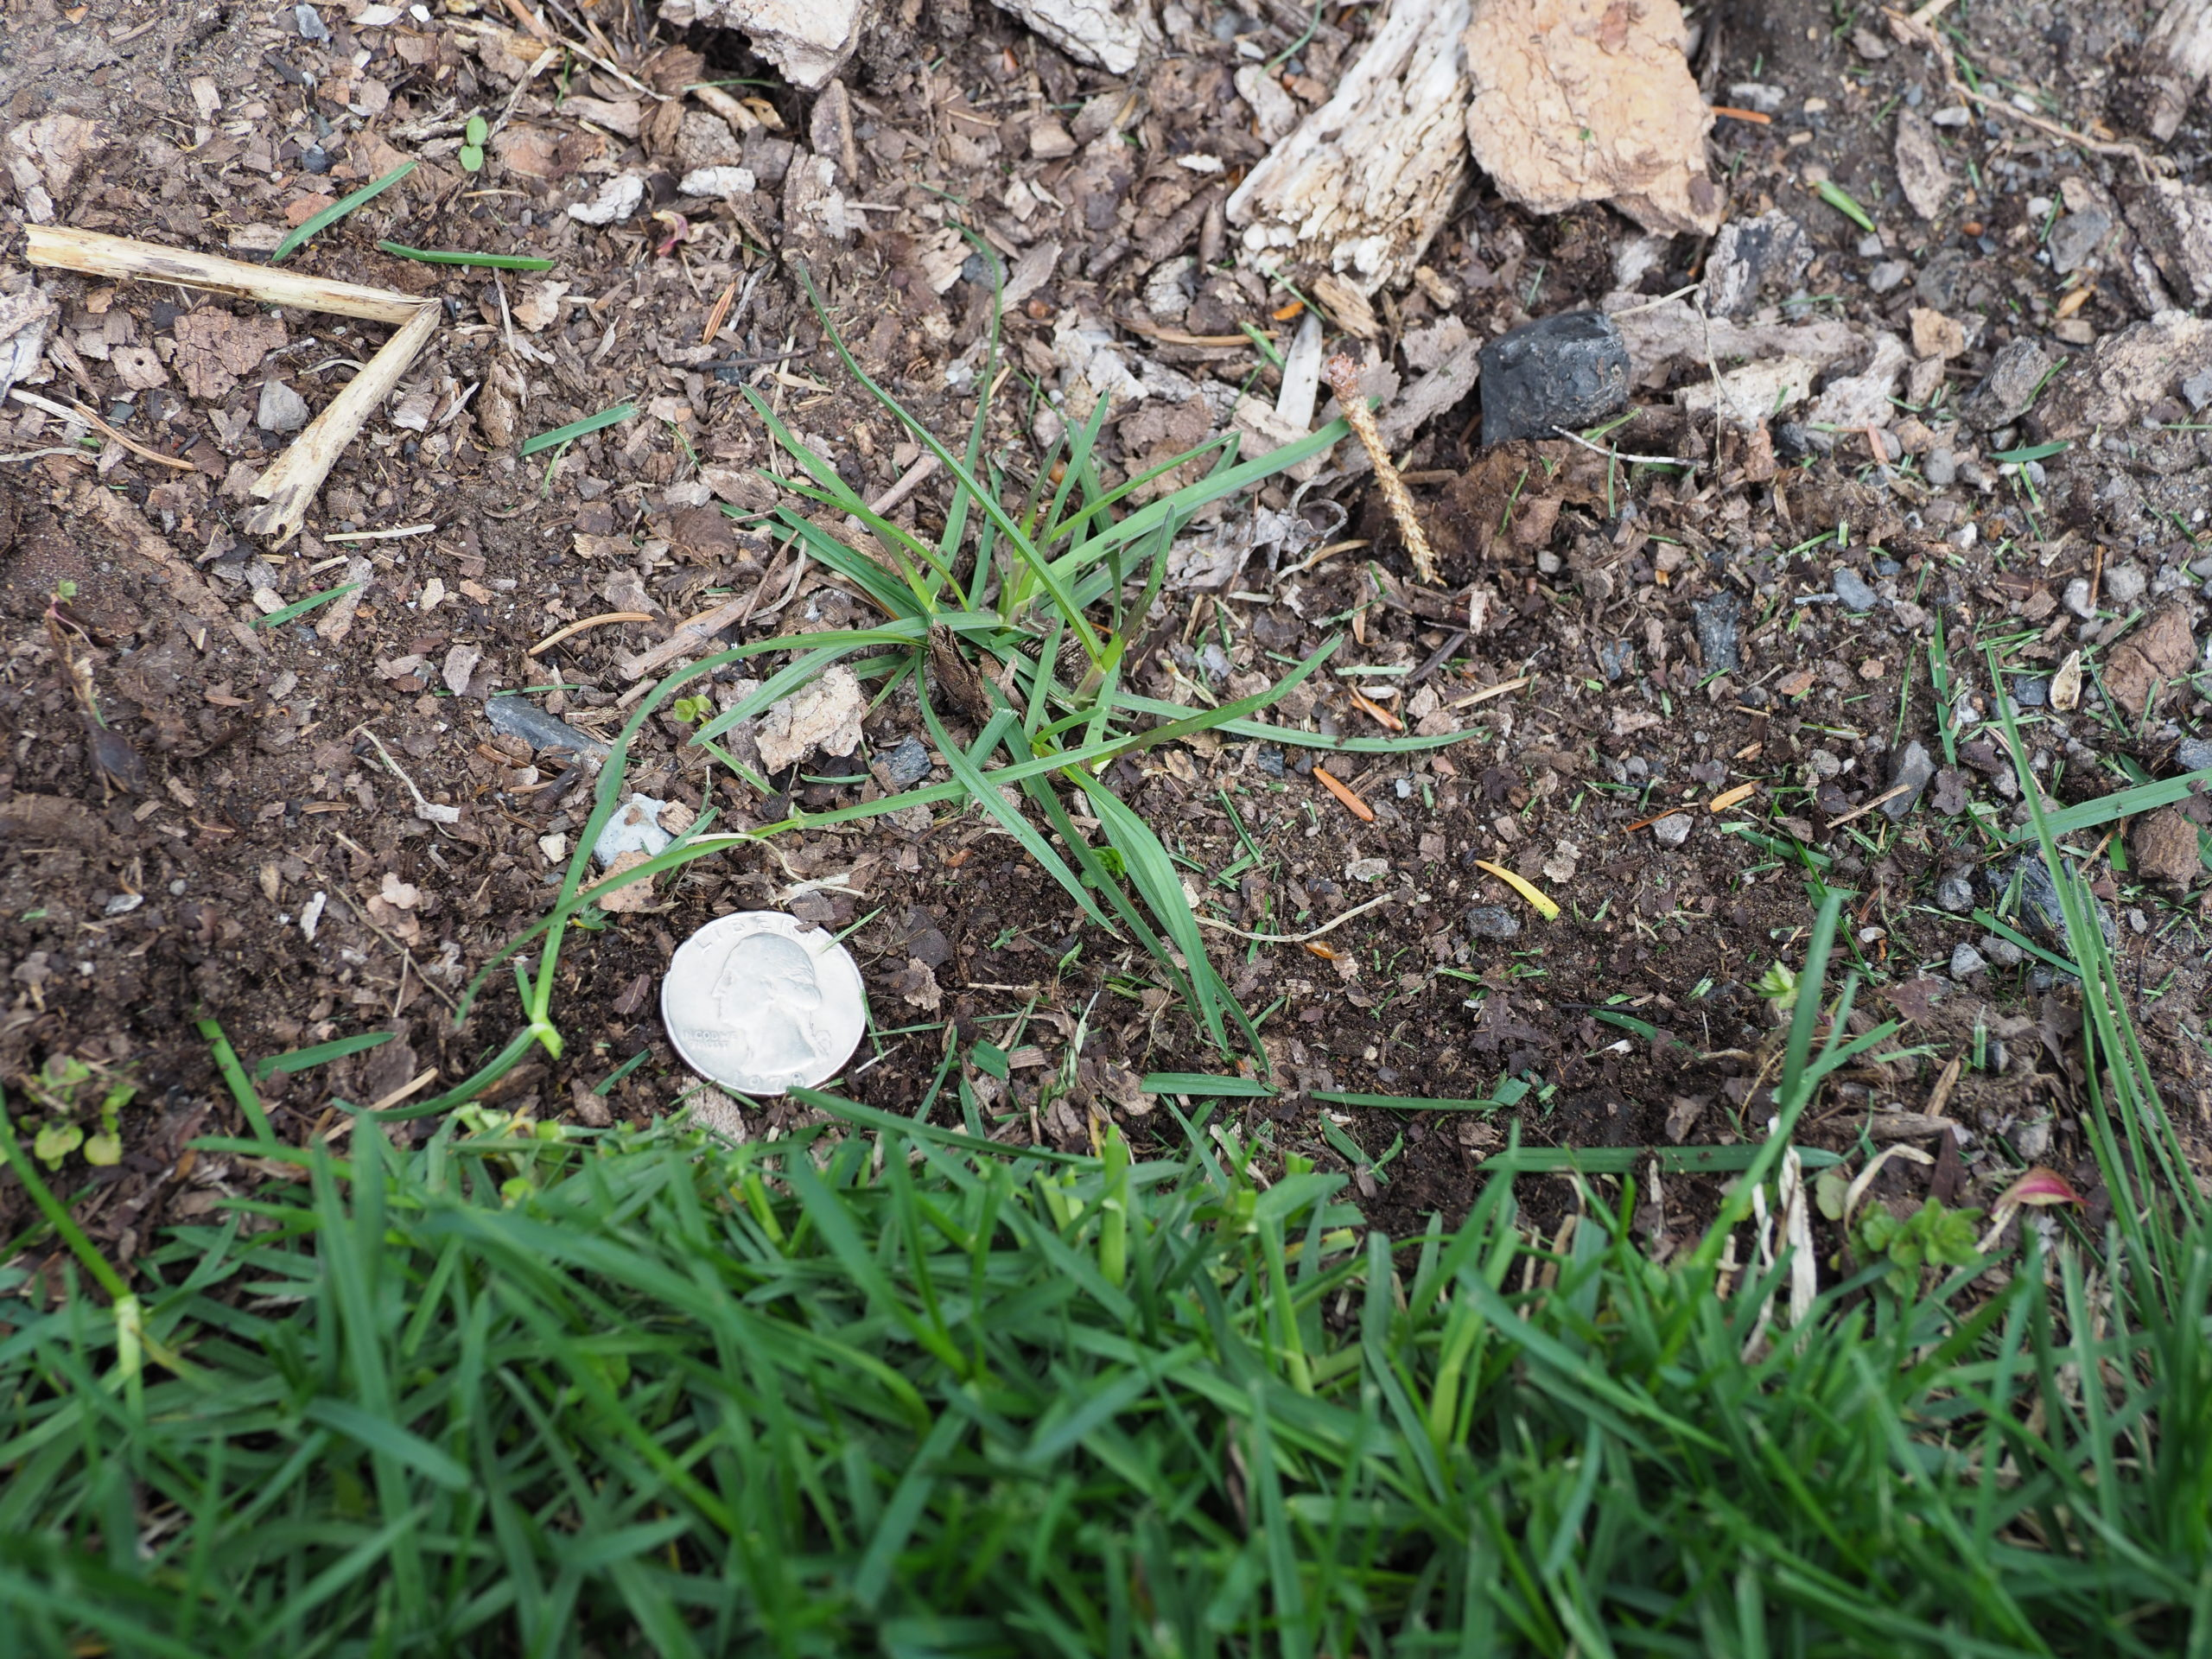 Just below the quarter is the lawn edge.  Above the quarter is what looks like a new grass plant, but it's not.